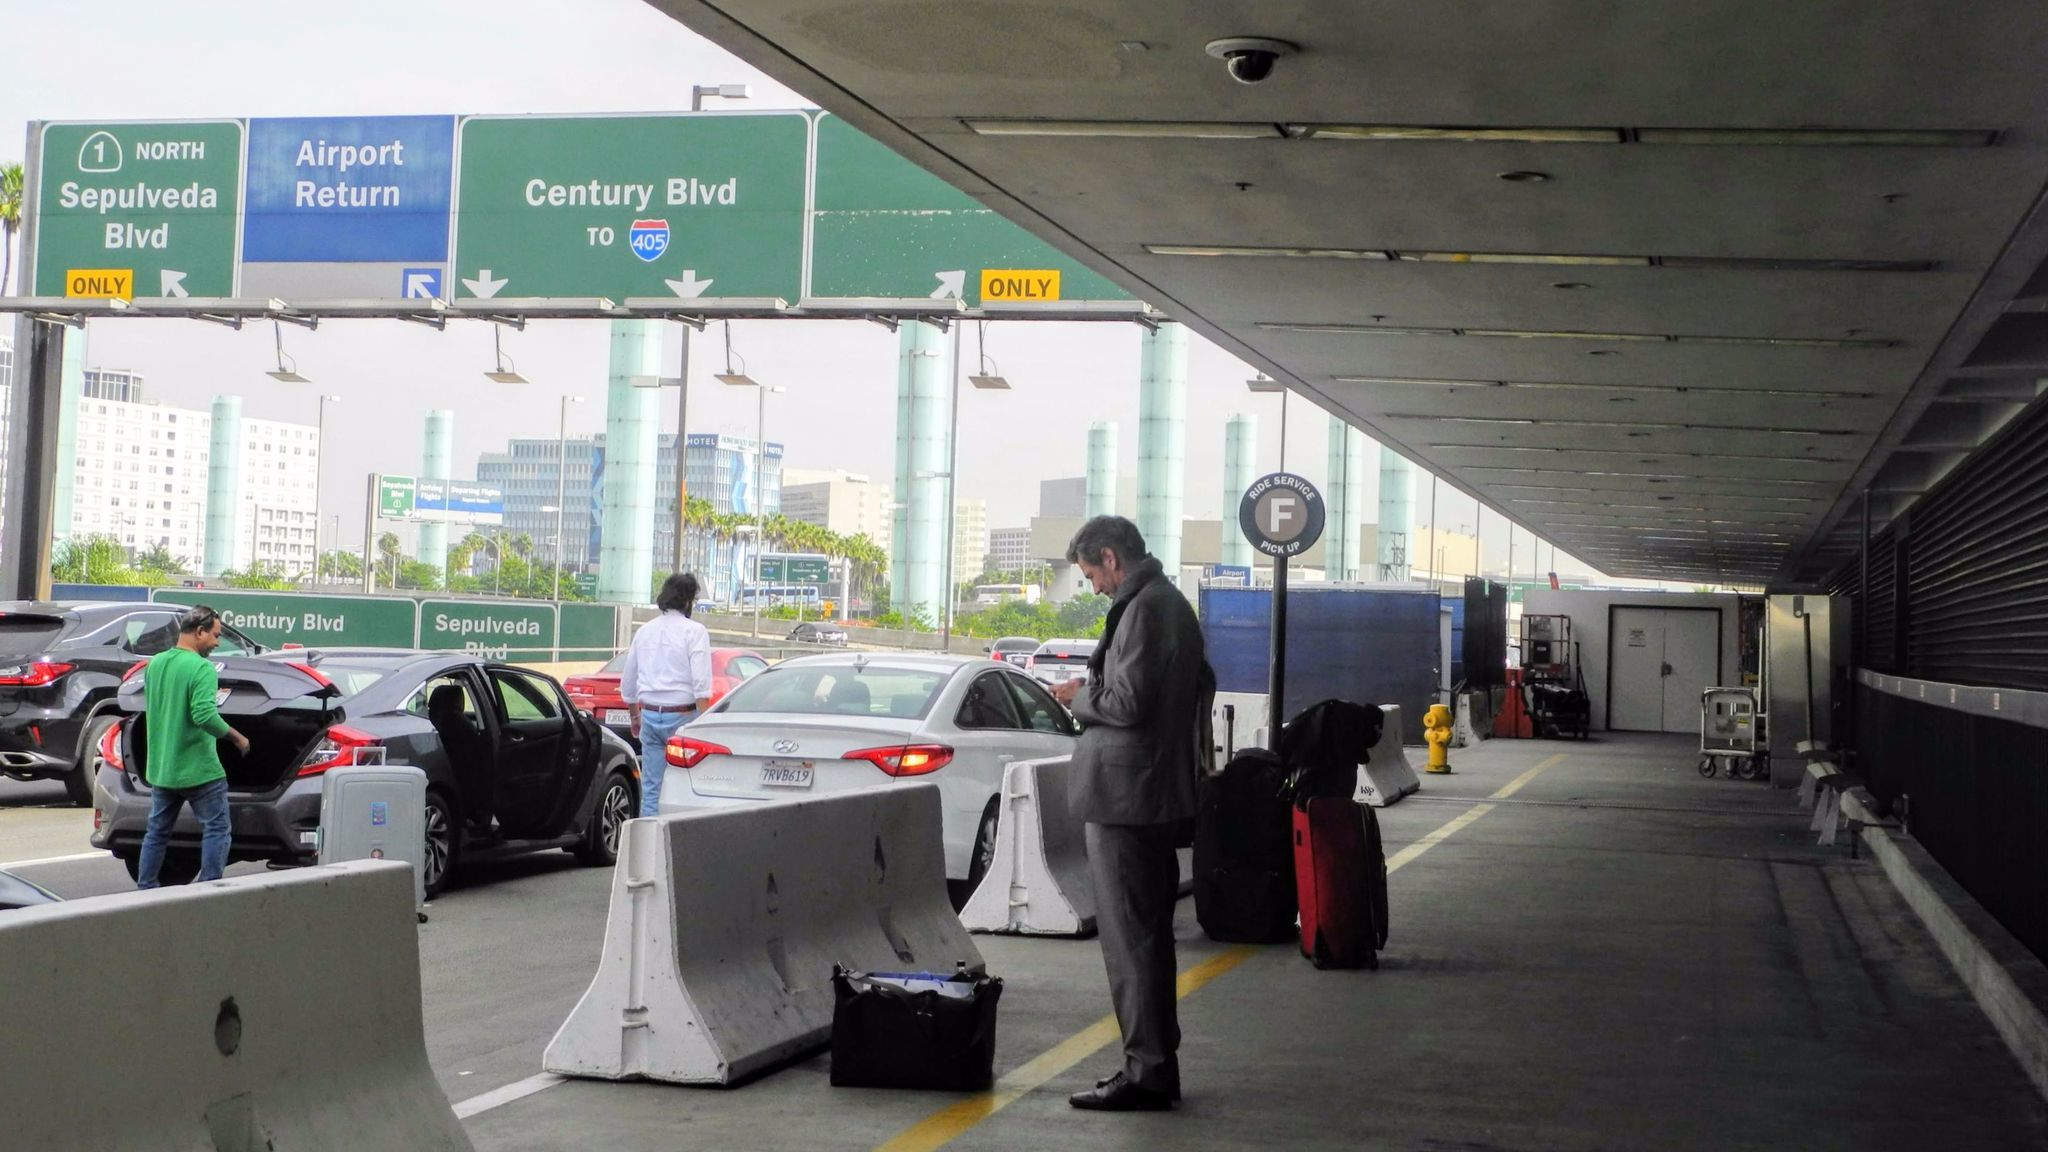 Walk over to Terminal 7 at LAX and meet your rideshare driver under the F sign. This allows the driv